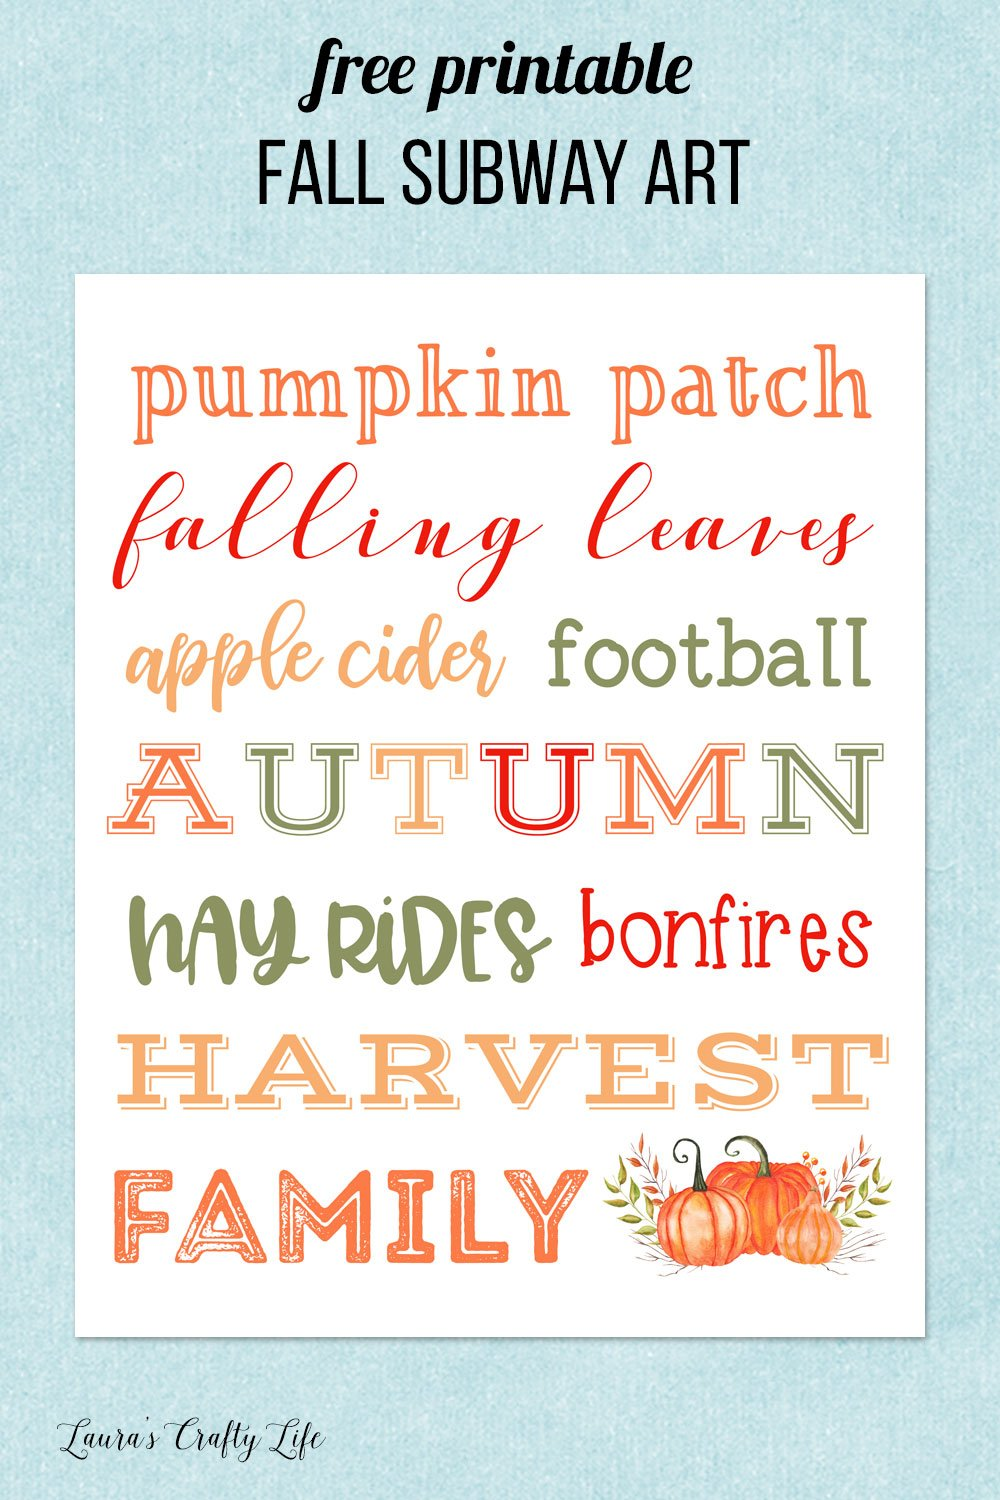 free printable fall subway art